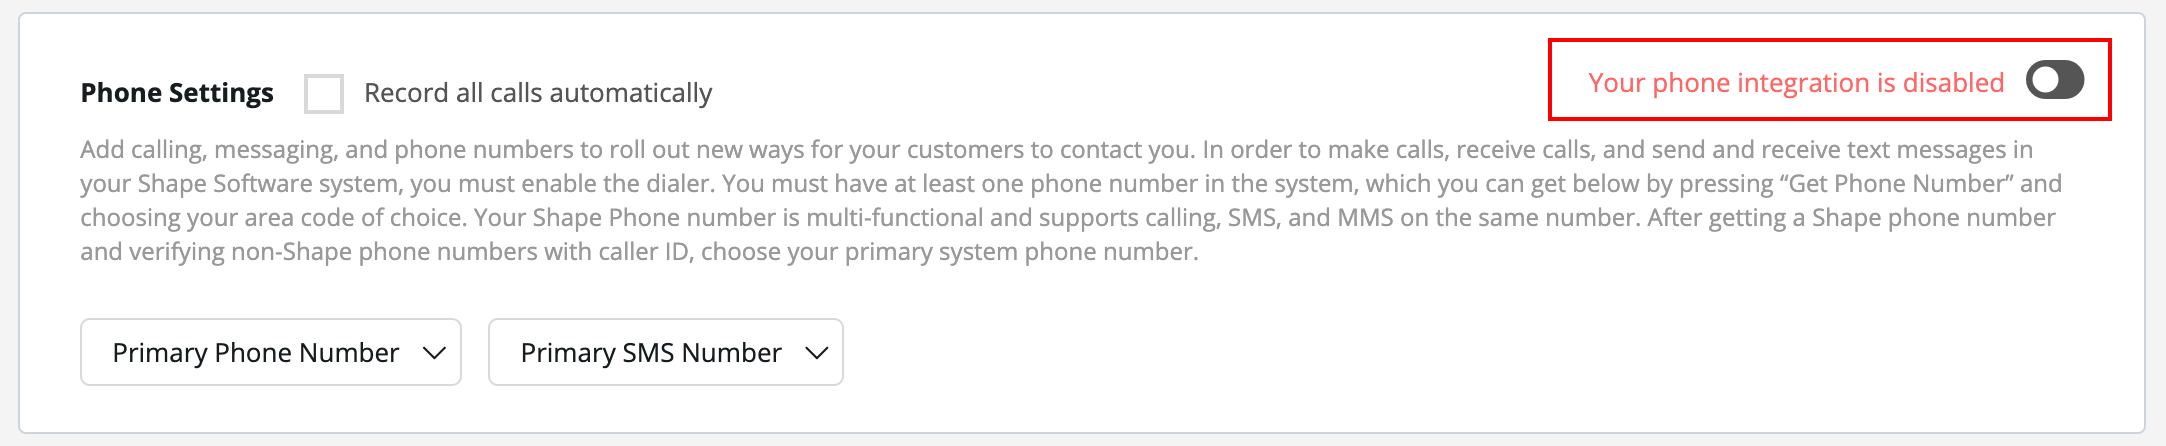 shapesoftware-manage-calling-texting-settings.png